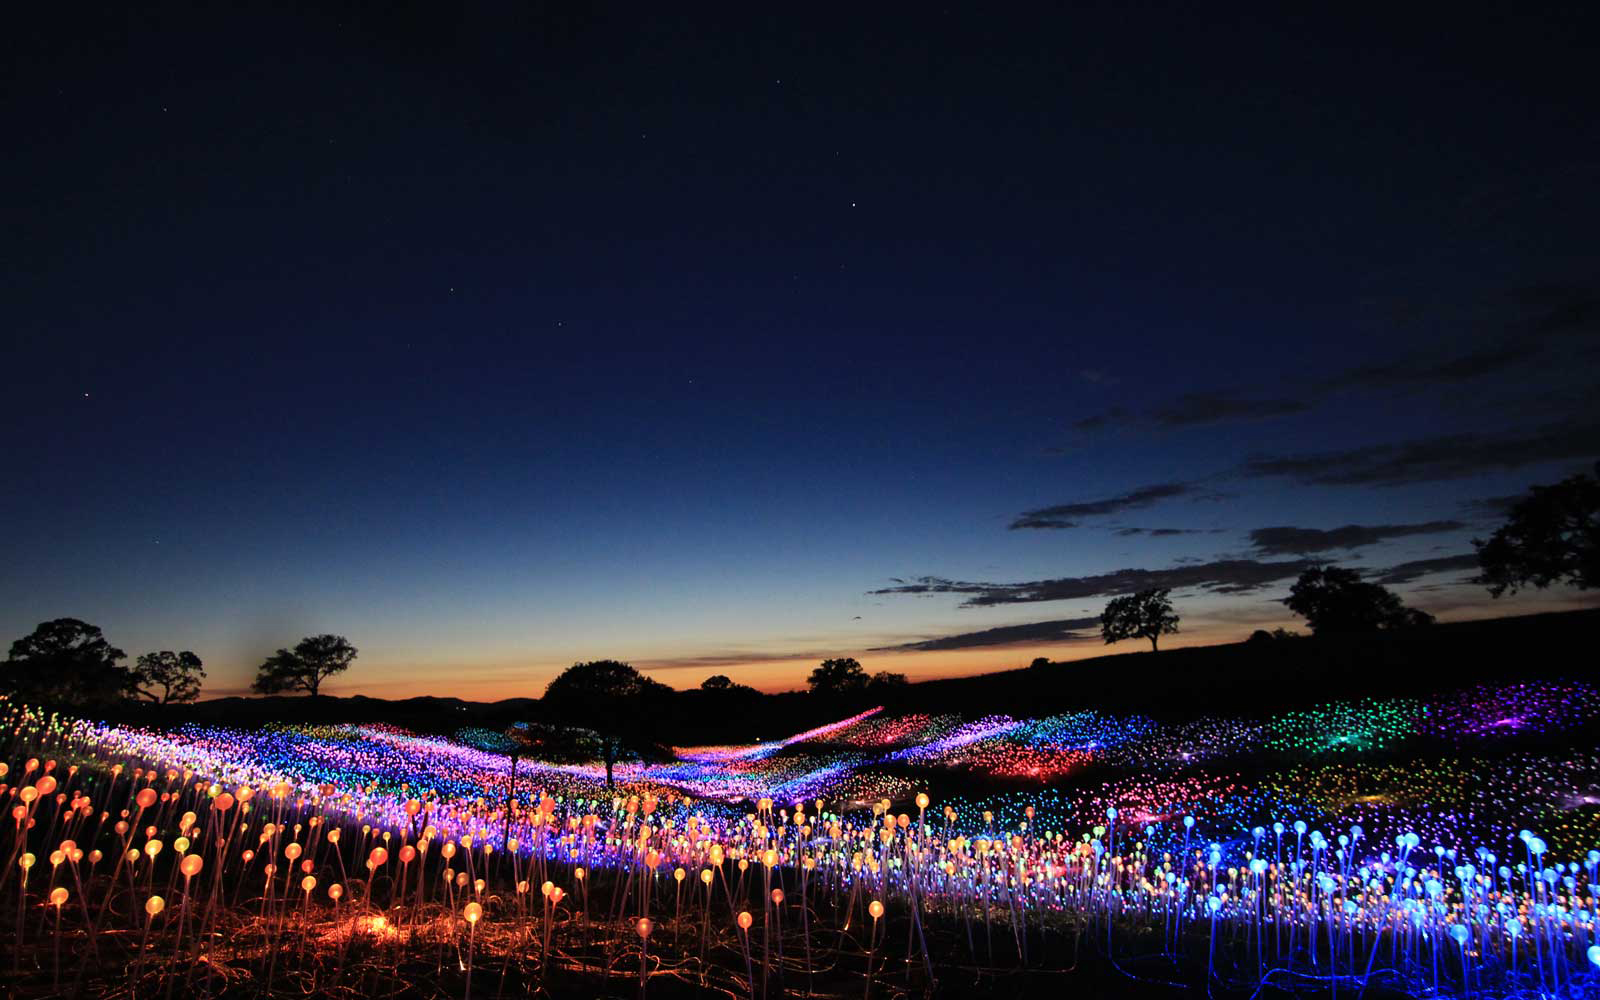 Nearly 60,000 twinkling LEDs light up the hills of Californian wine country